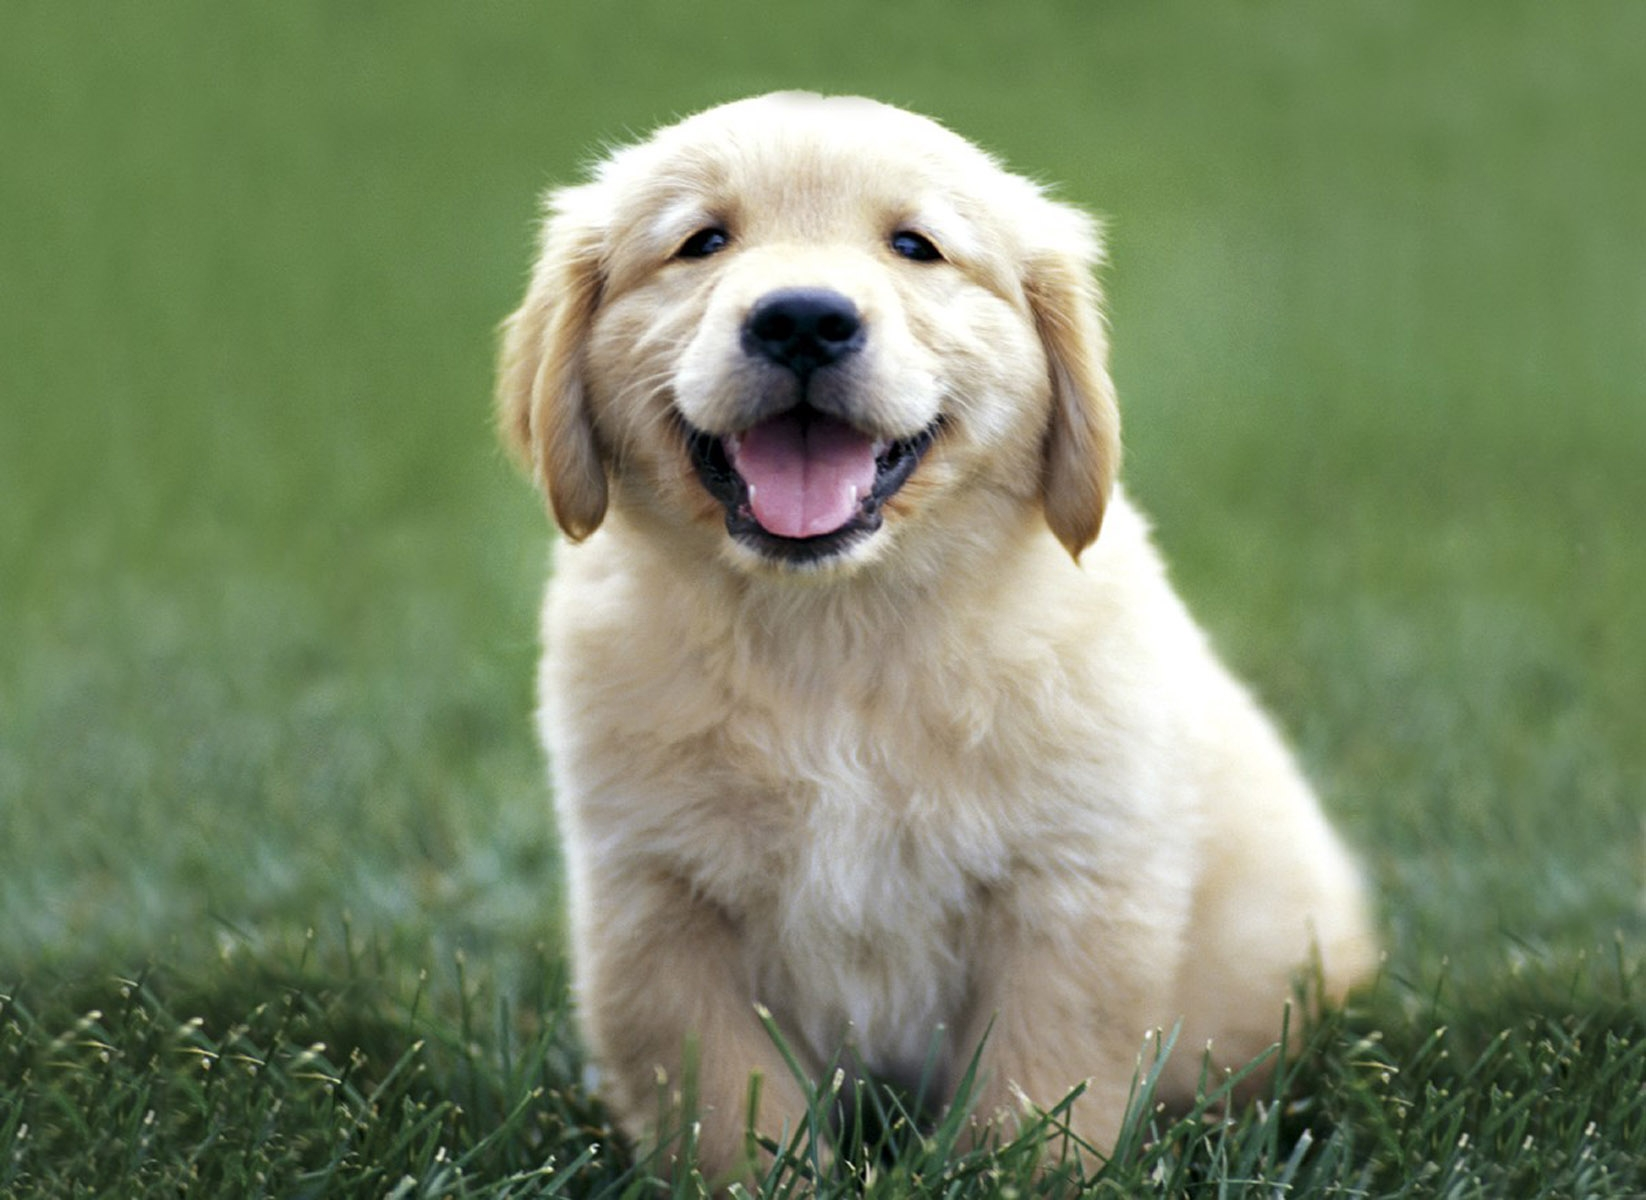 Well that was horrible. Here's a picture of a puppy.